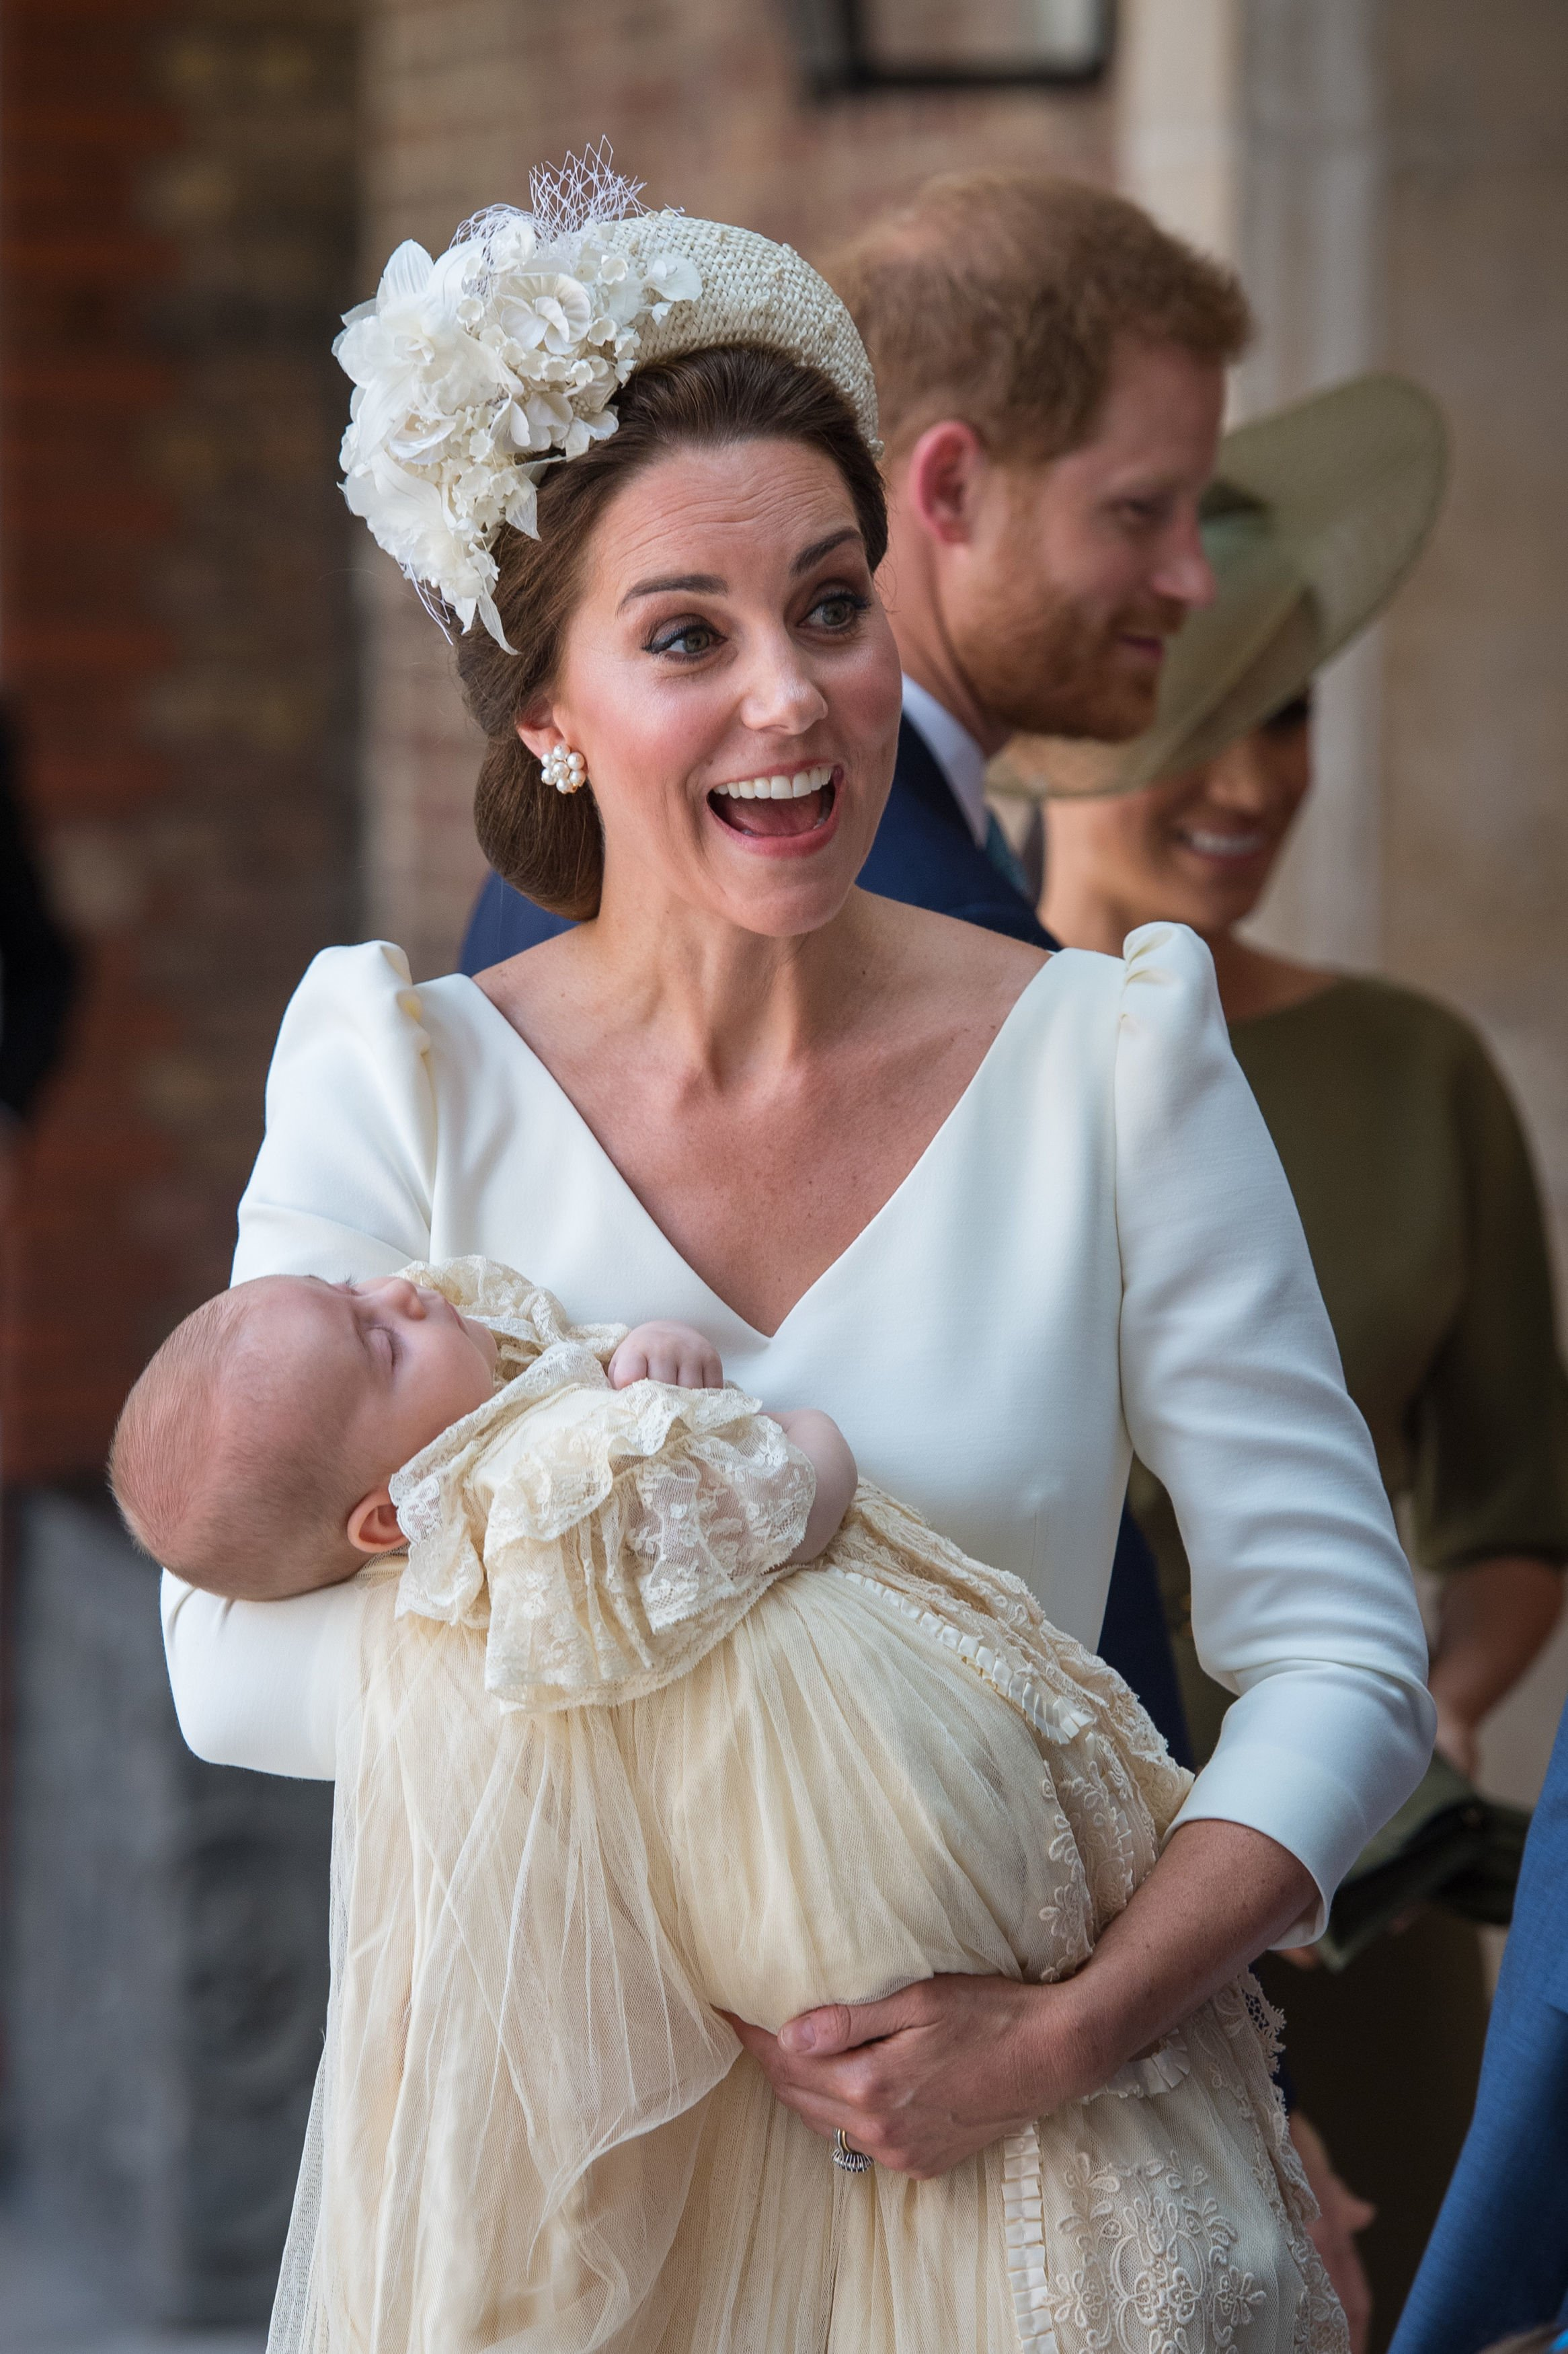 Prince Louis wearing the replica of the royal christening gown while being held by Kate Middleton at St James's Palace in London, England | Photo: Getty Images